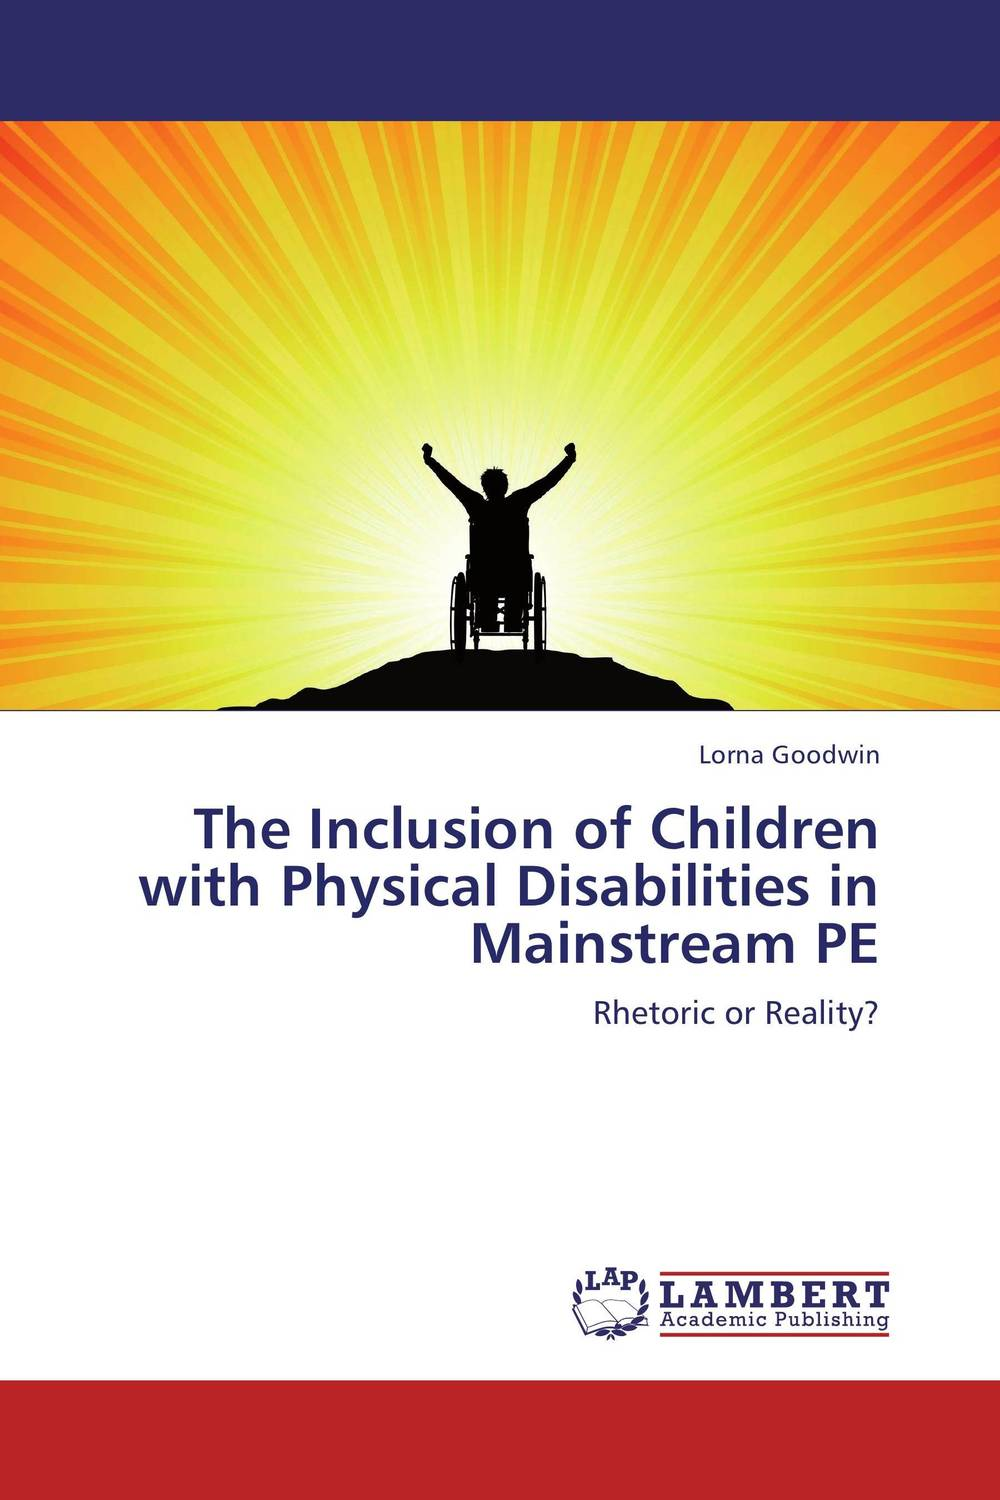 цена на The Inclusion of Children with Physical Disabilities in Mainstream PE